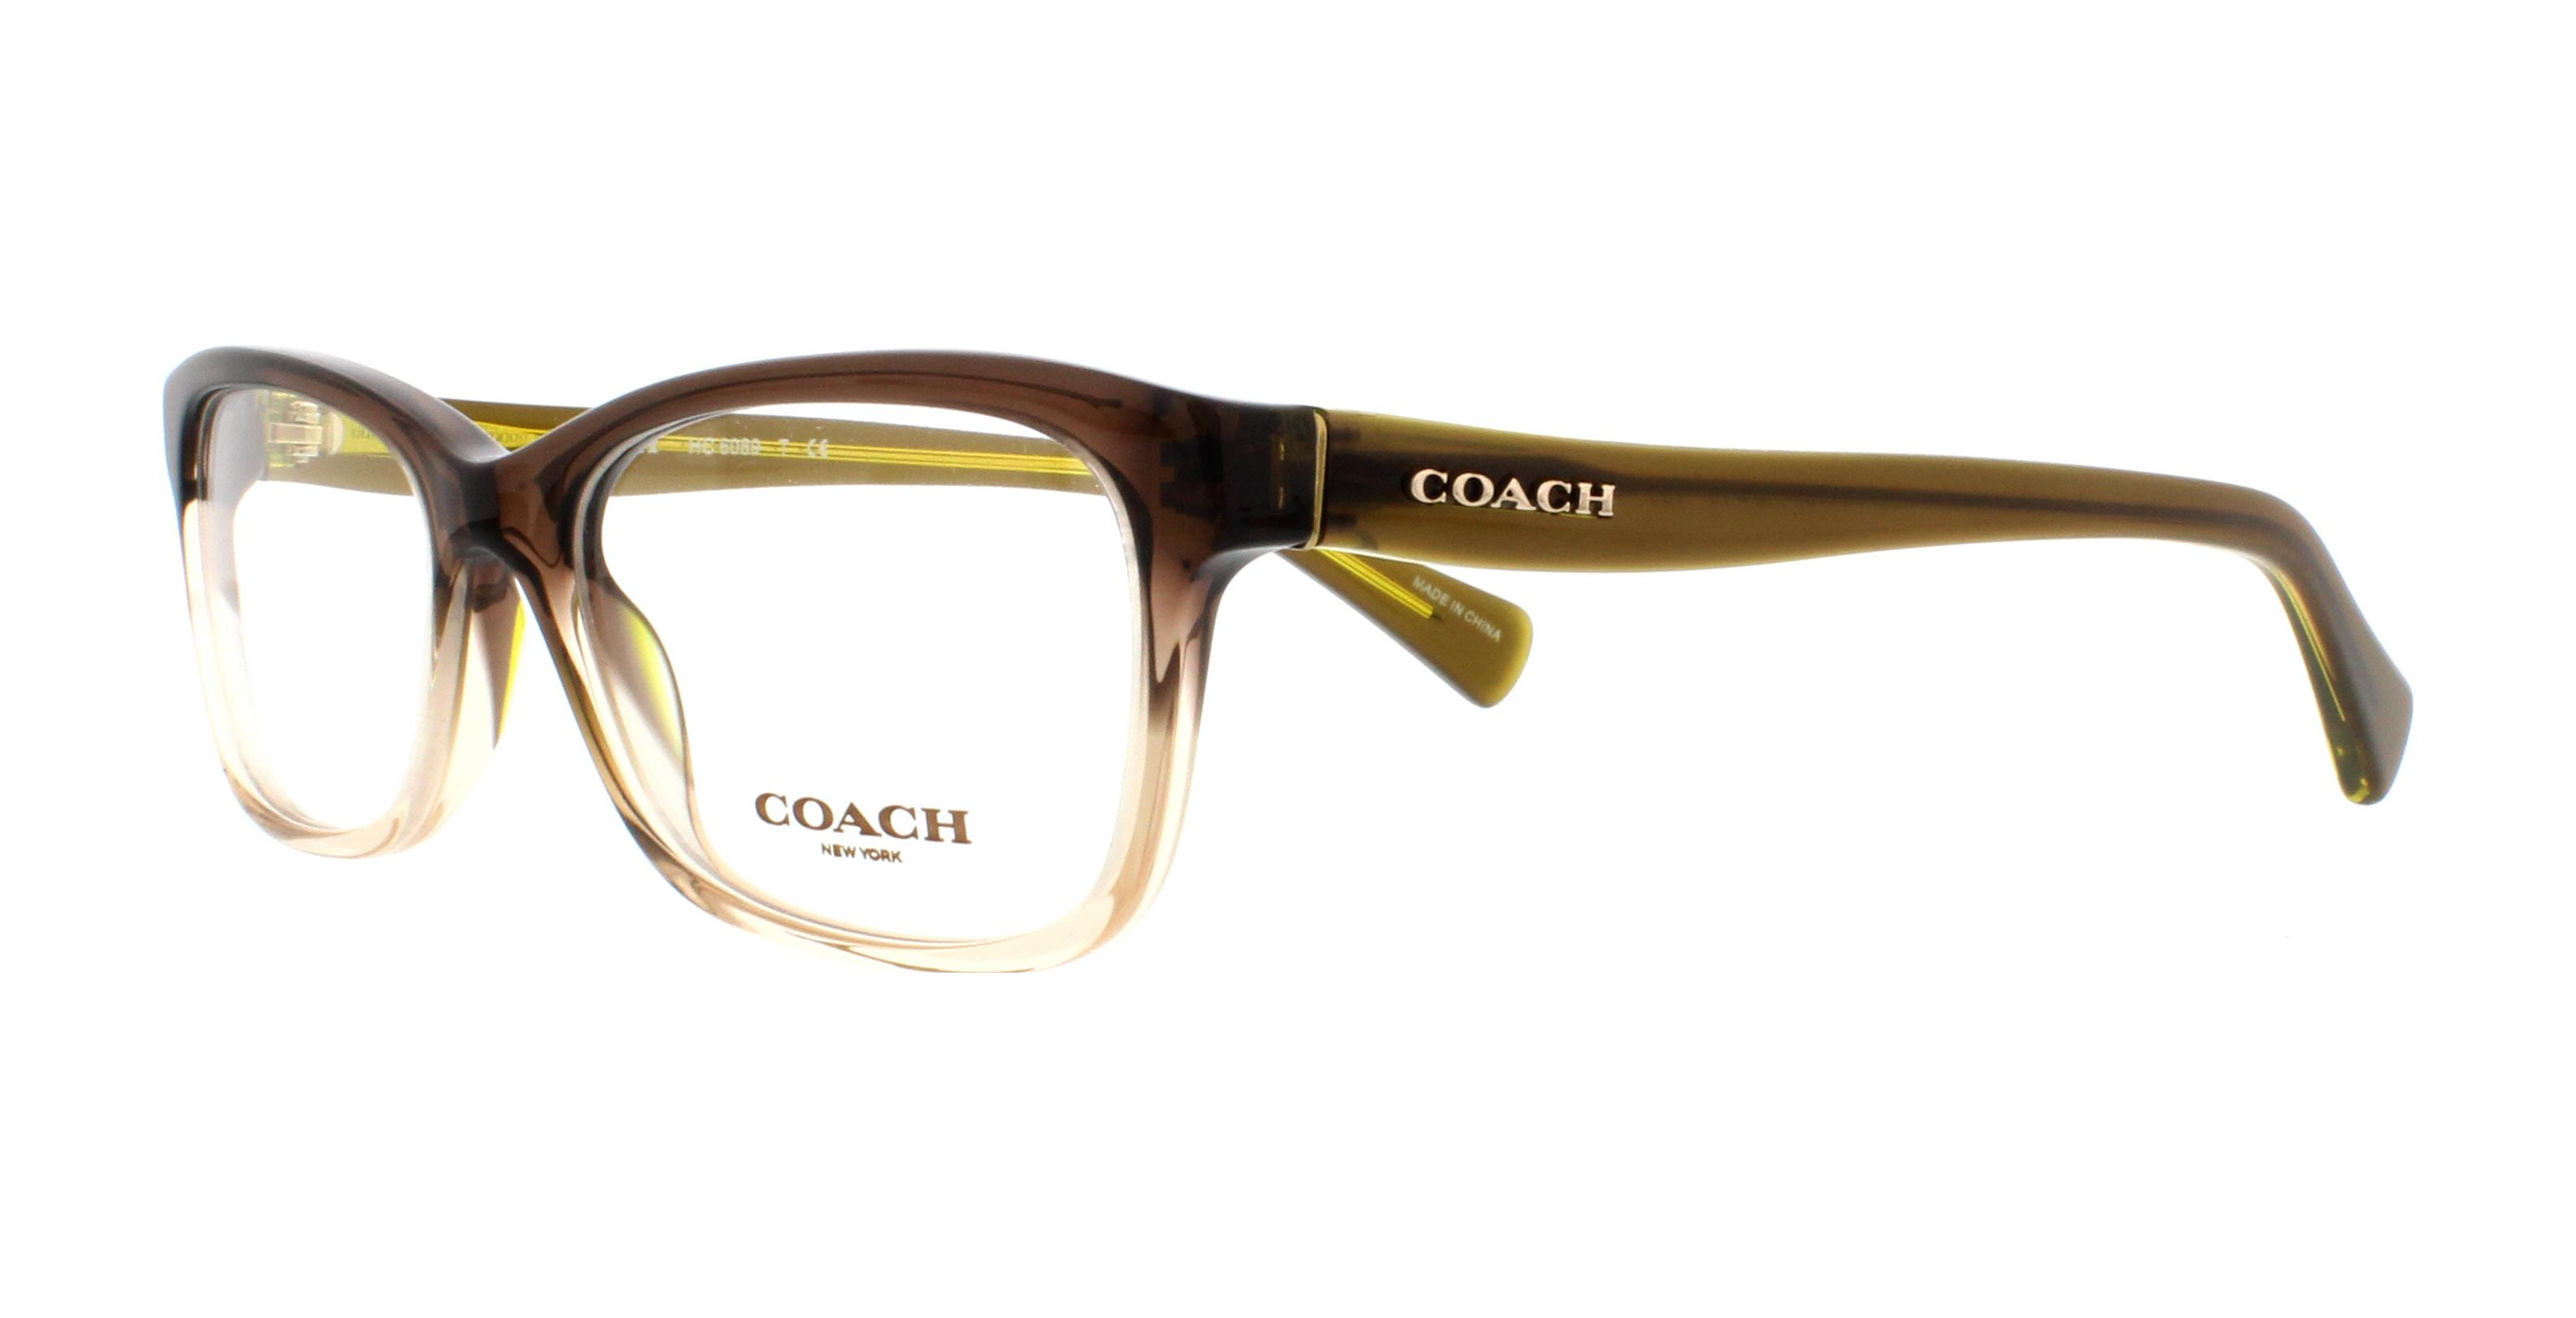 COACH Eyeglasses HC6089 5400 Olive Brown Gradient/Olive 49MM | eBay